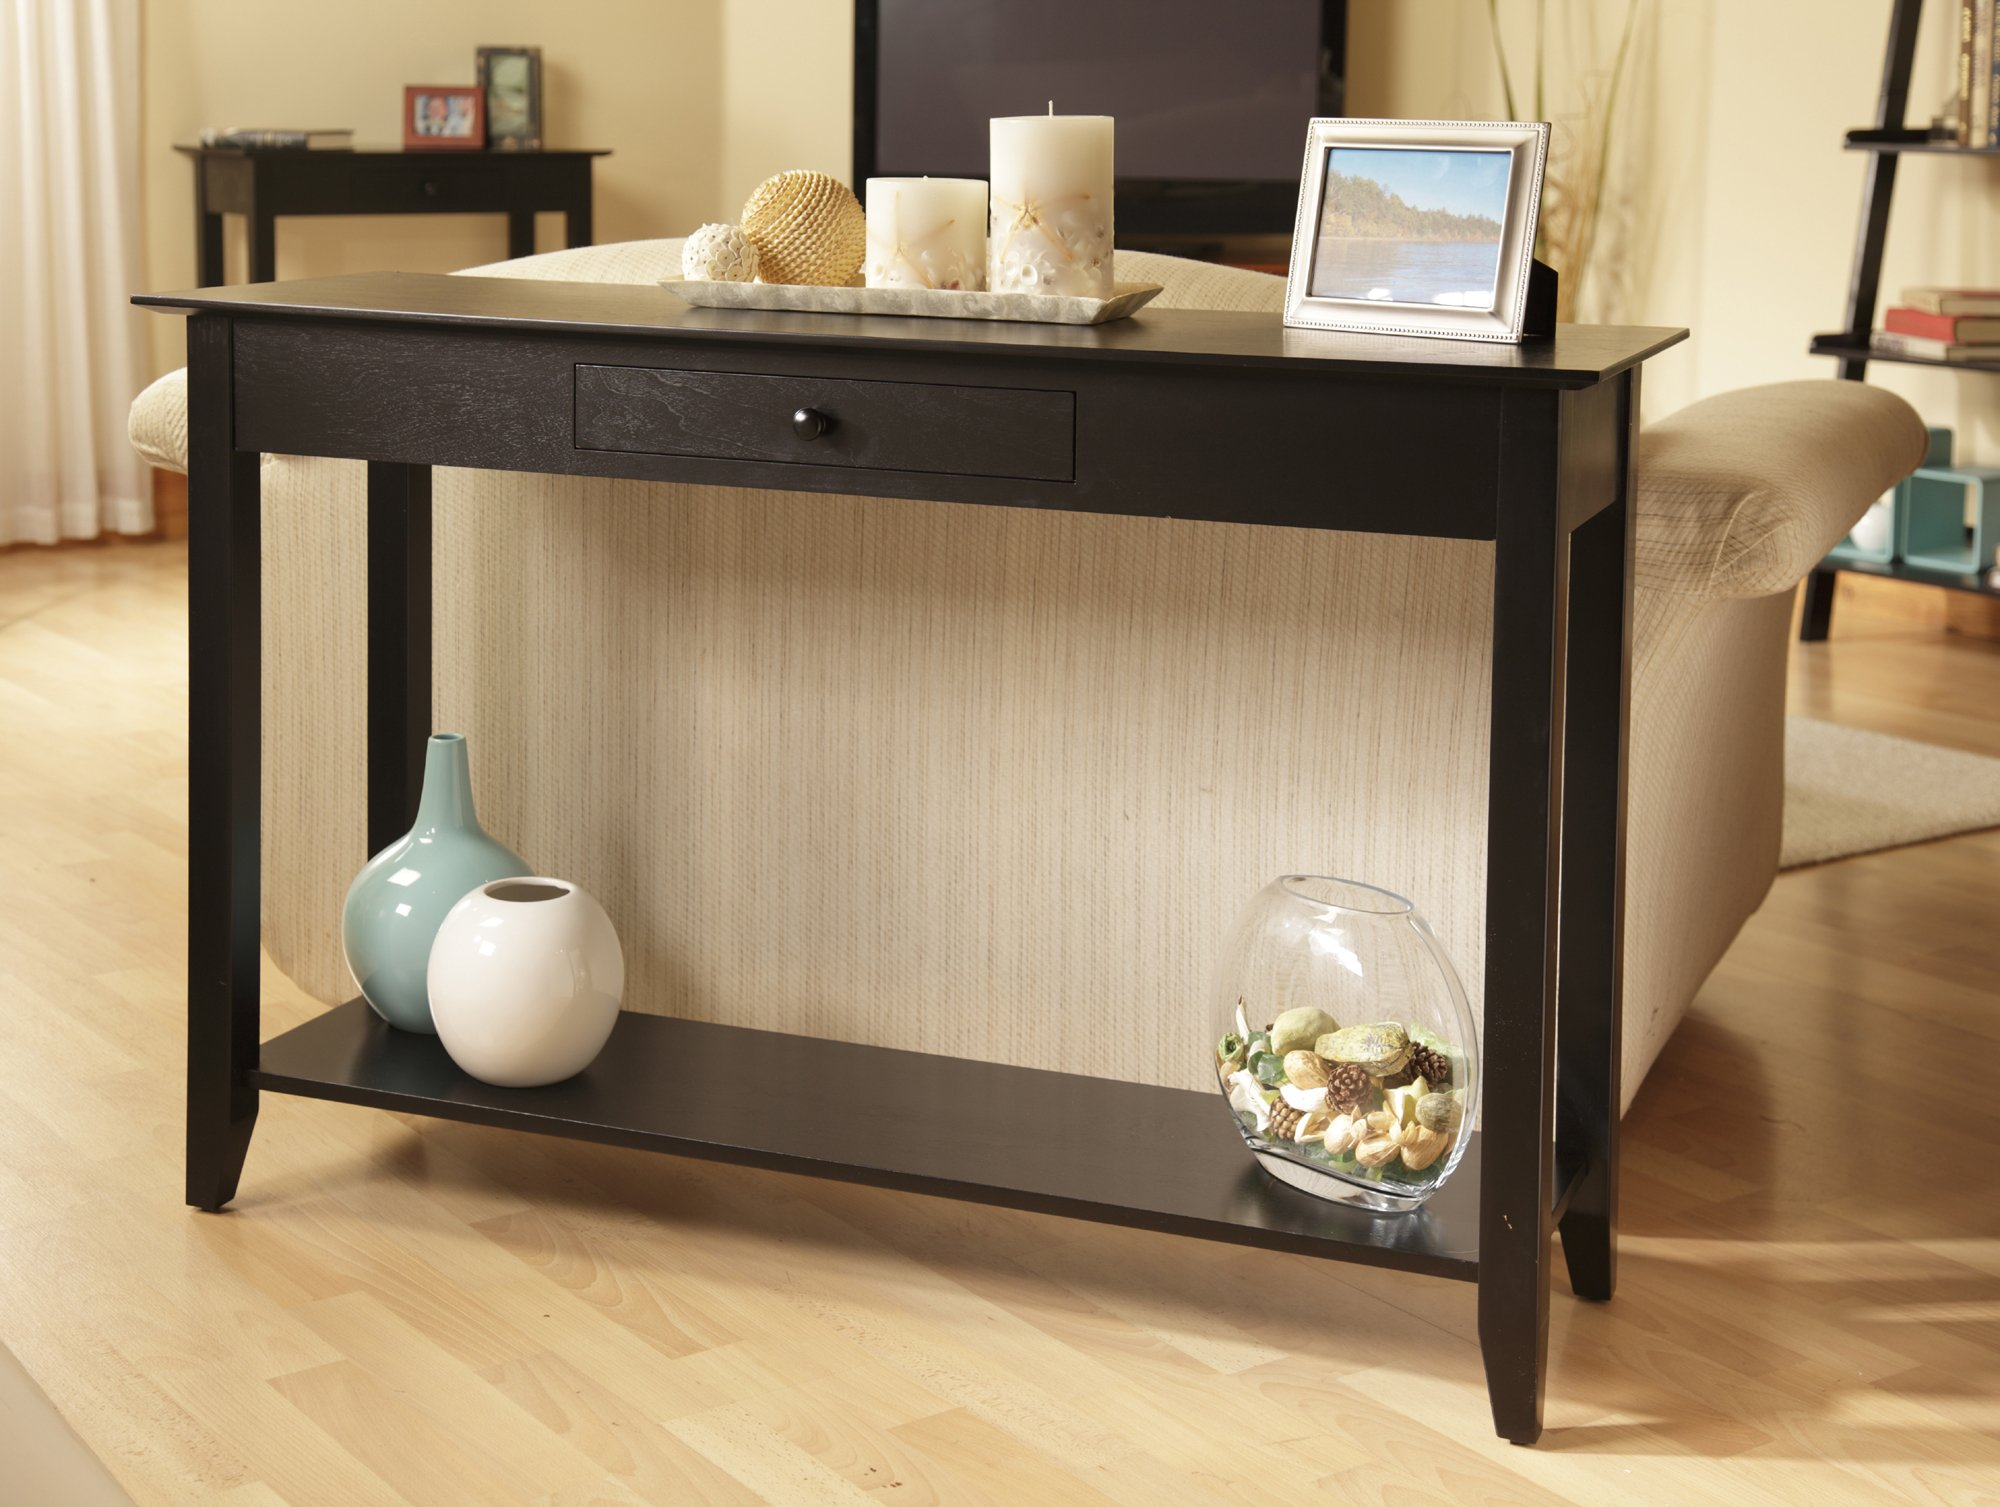 Convenience Concepts American Heritage Console Table with Drawer and Shelf, Black by Convenience Concepts (Image #2)